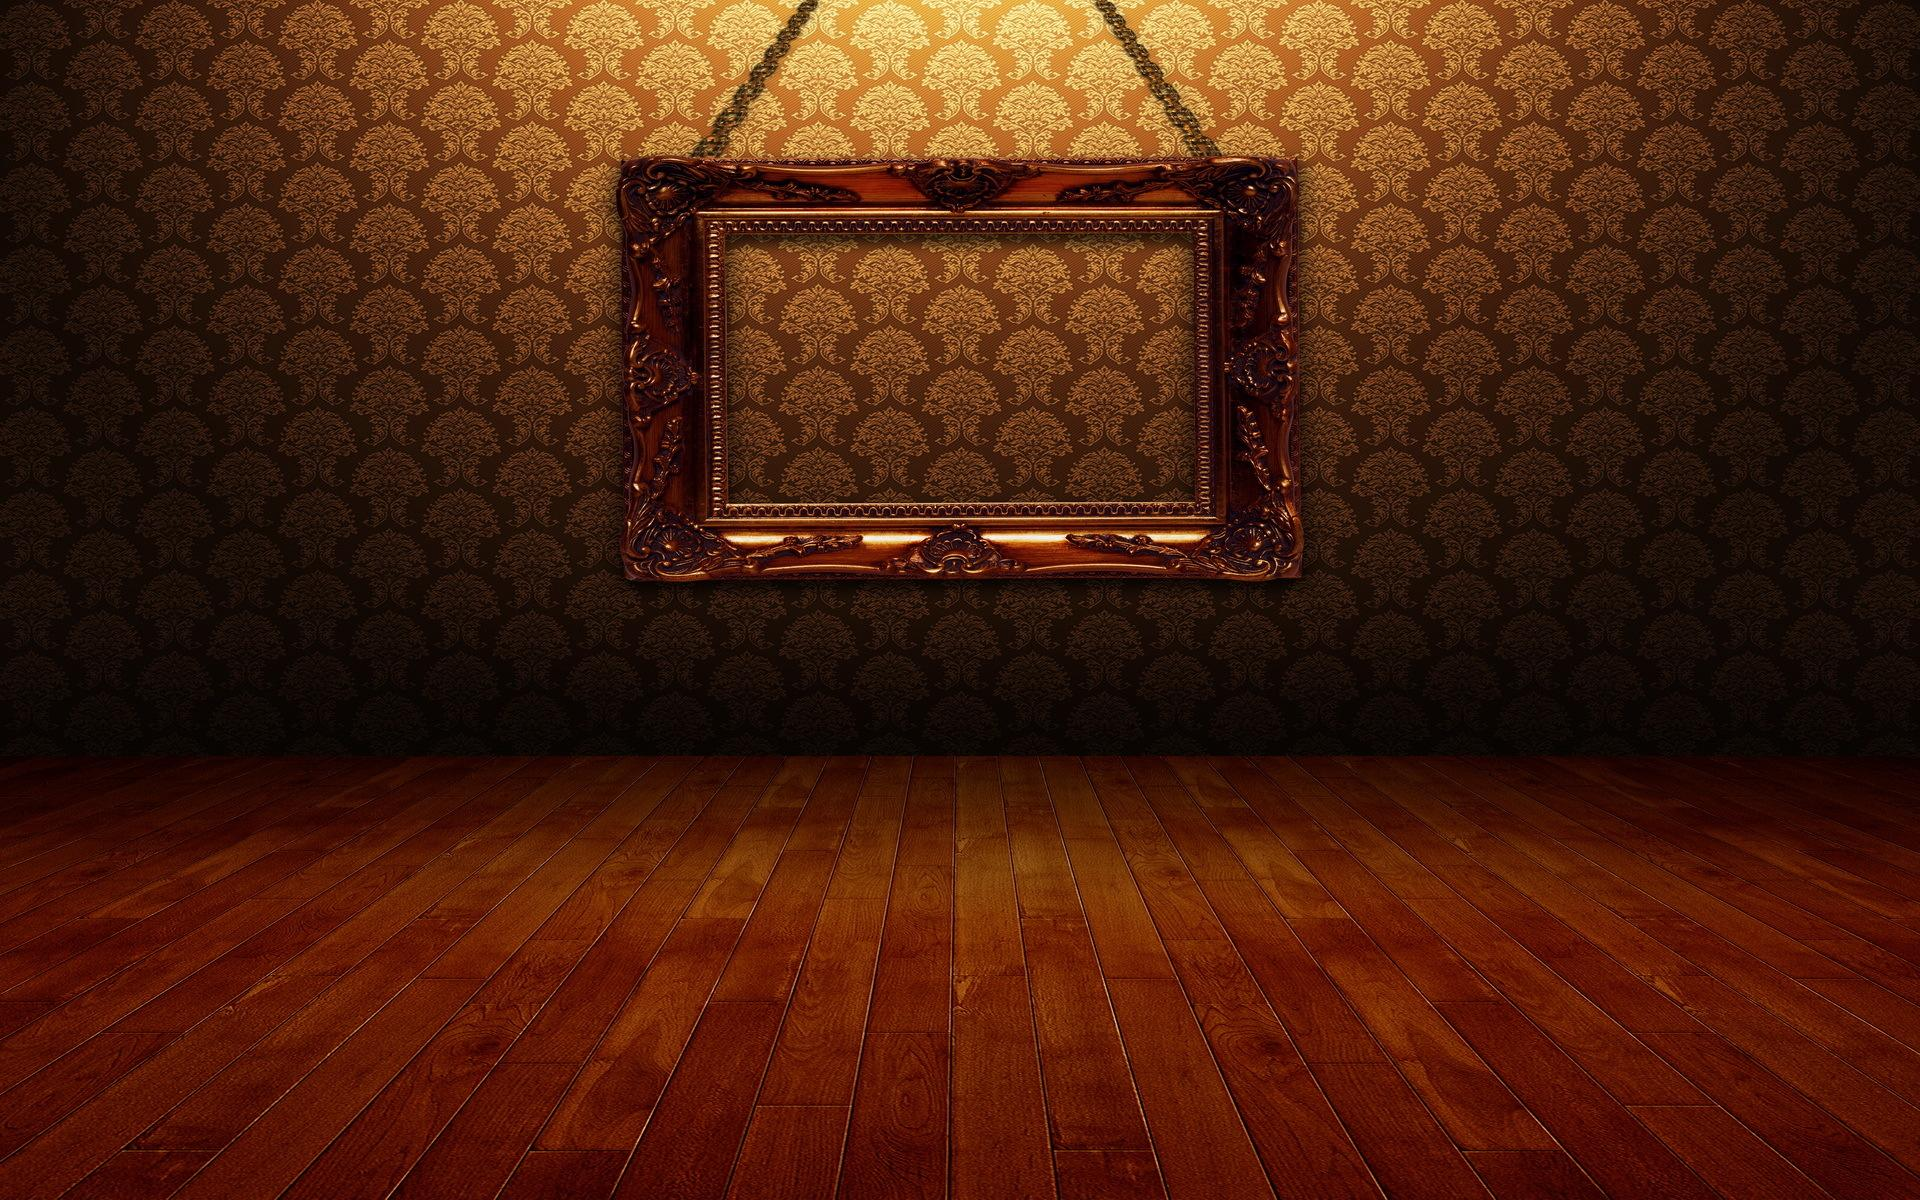 chair photo frame hd rocking metal golden on the wall wallpaper download